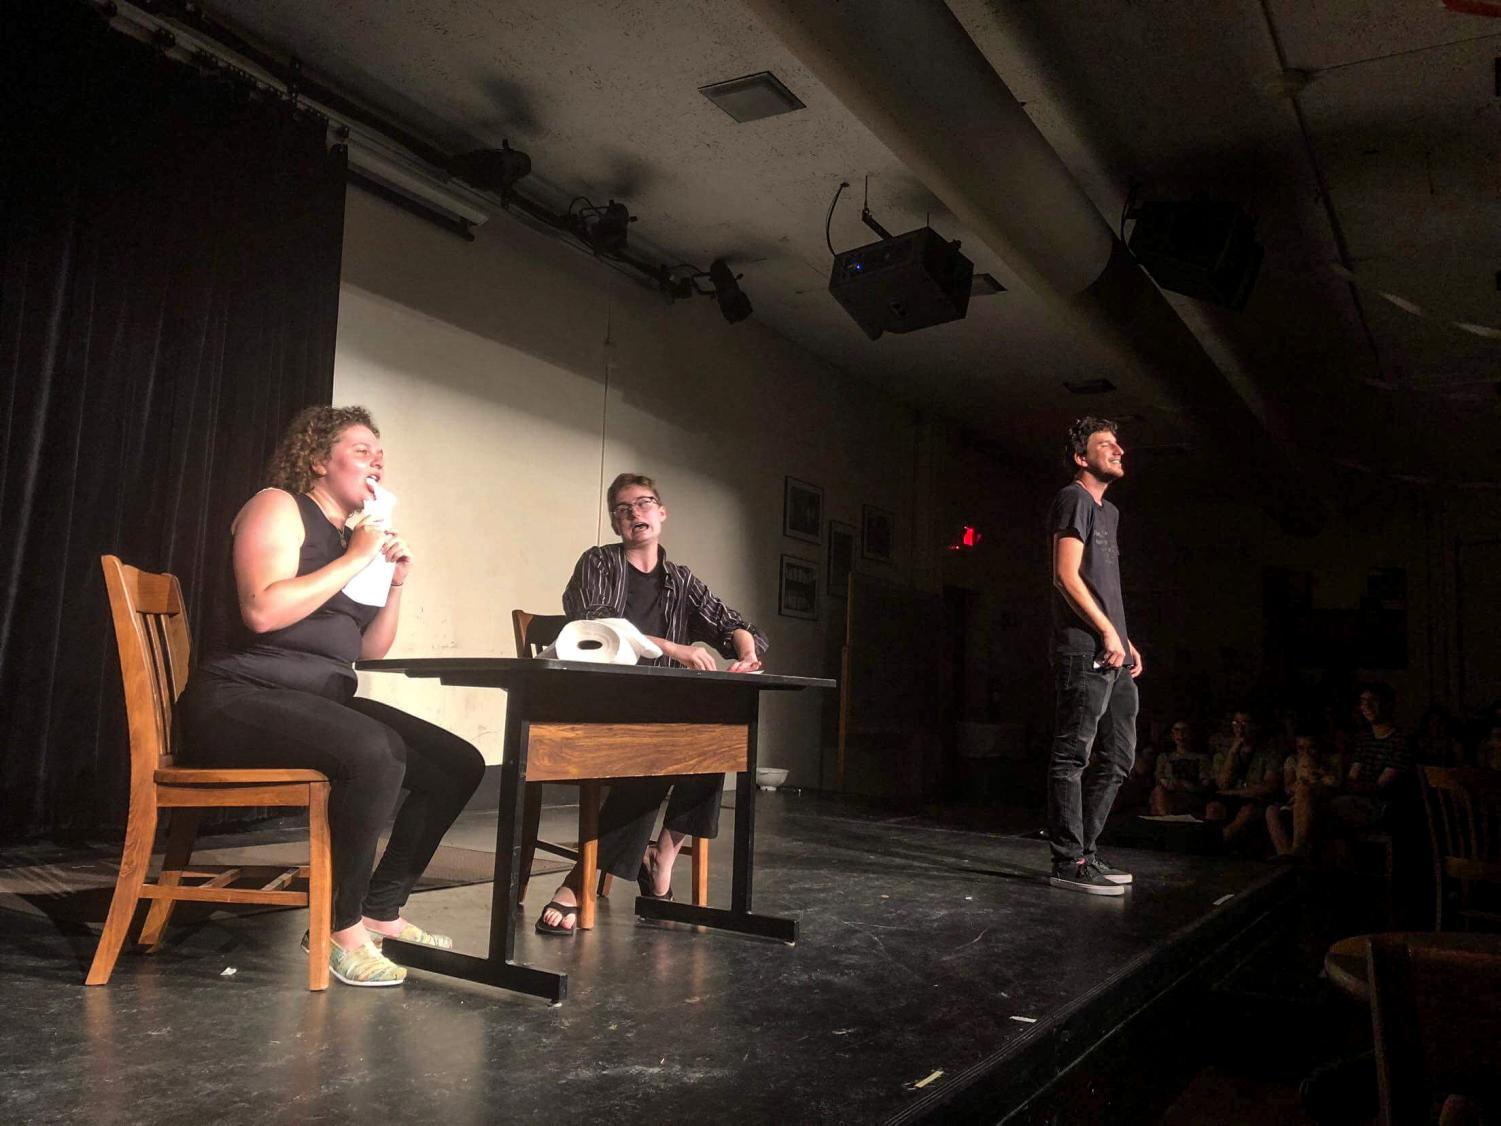 Members of the comedy group Piscapo's Arm performed quirky sketches at a first-year Orientation comedy show last Monday.